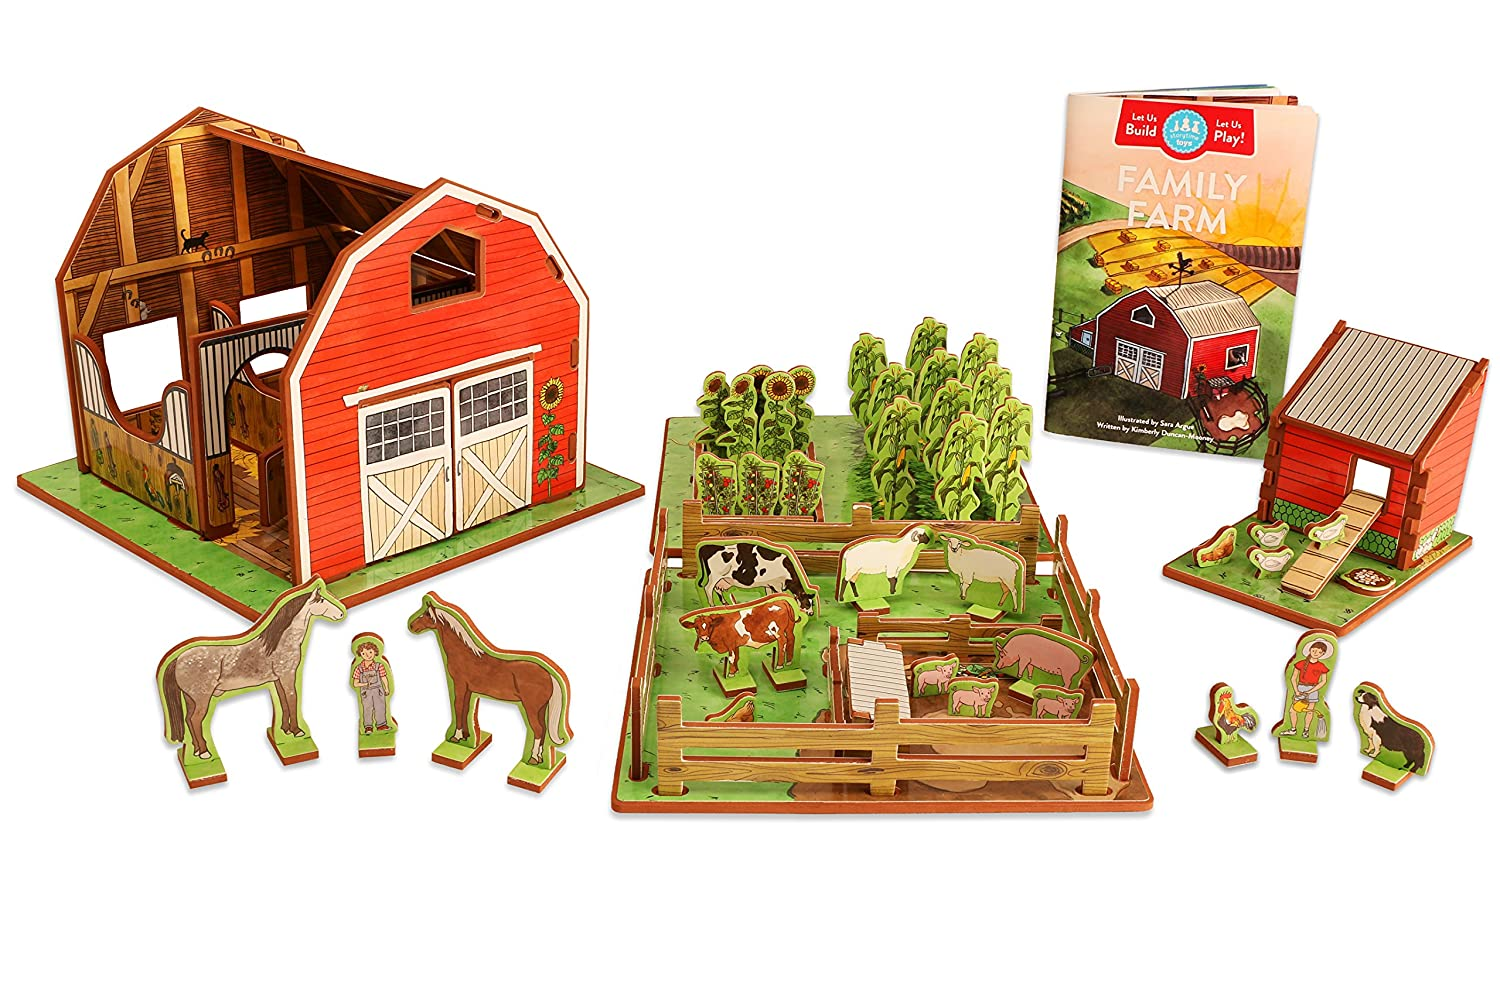 Top 9 Best Farm Animal Toys for Toddlers Reviews in 2019 4